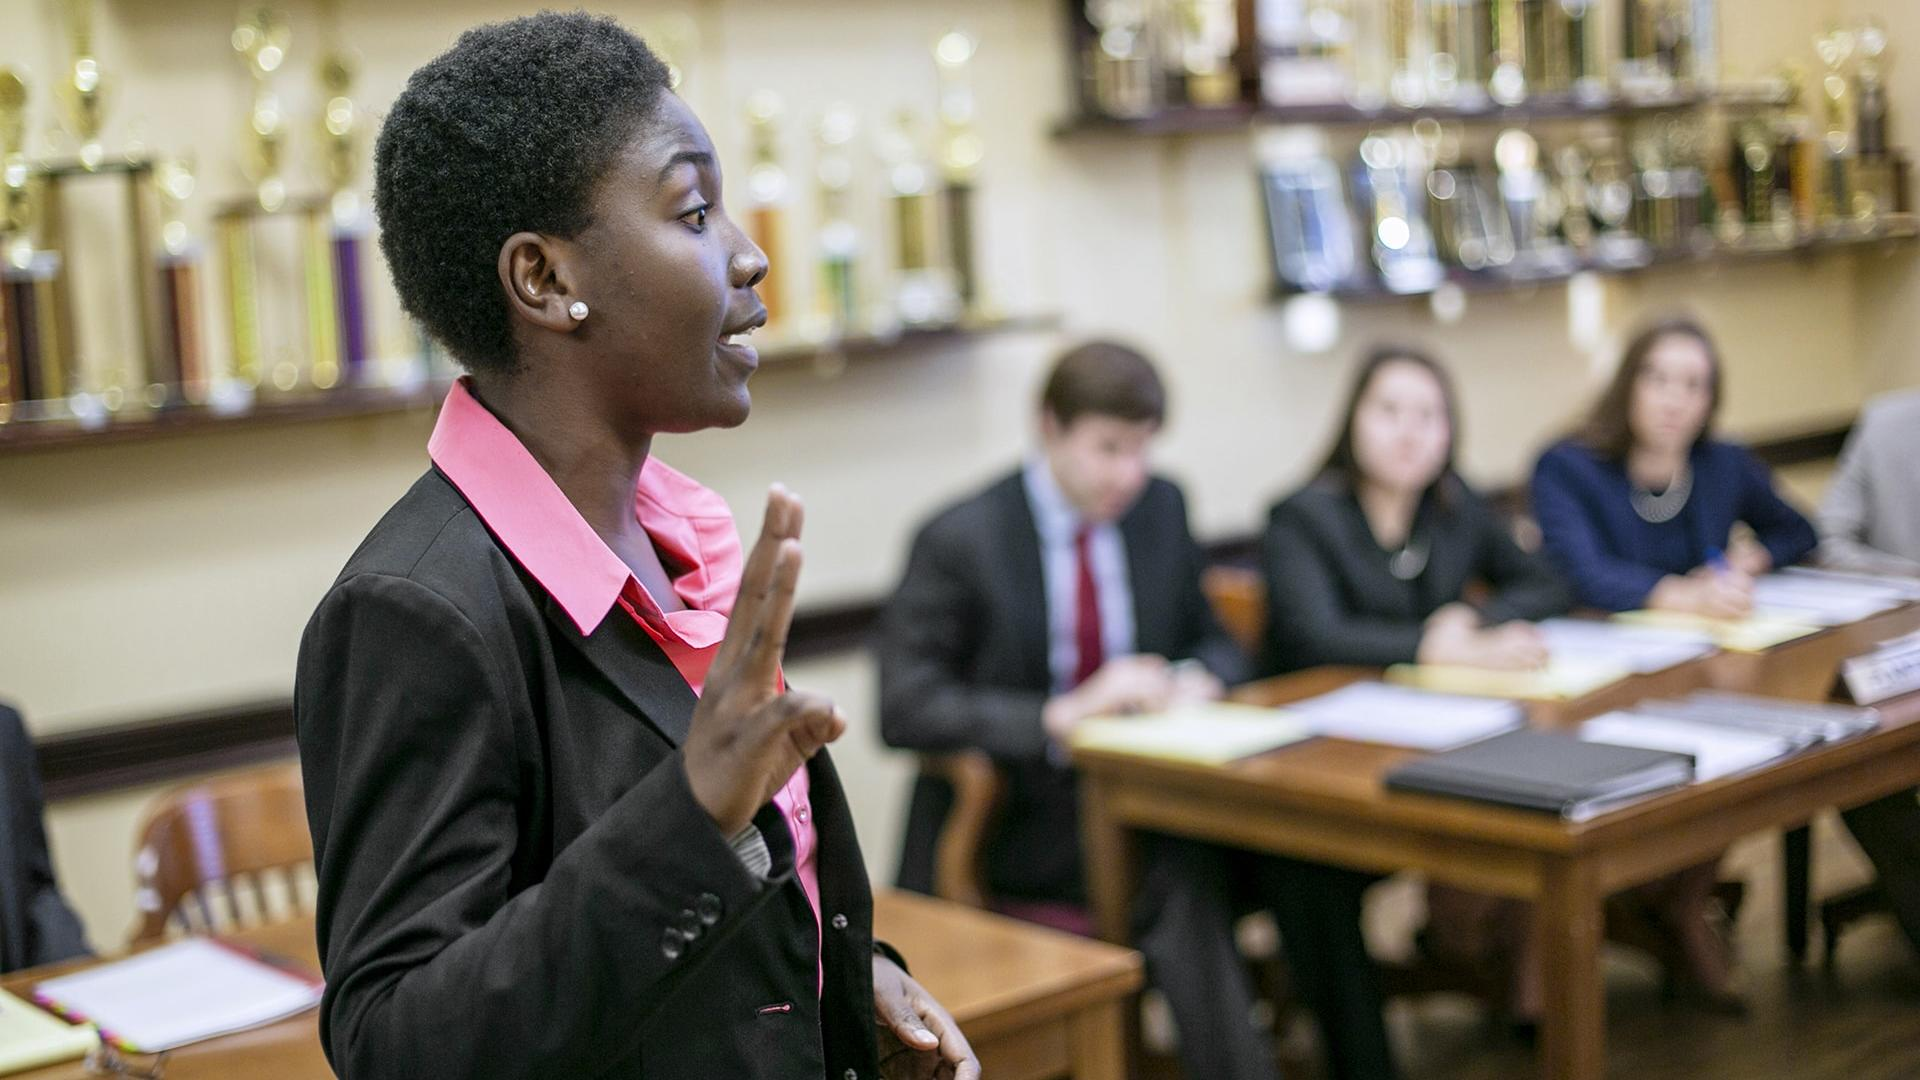 a young woman in a suit speaks before students at a desk in a room lined with trophies